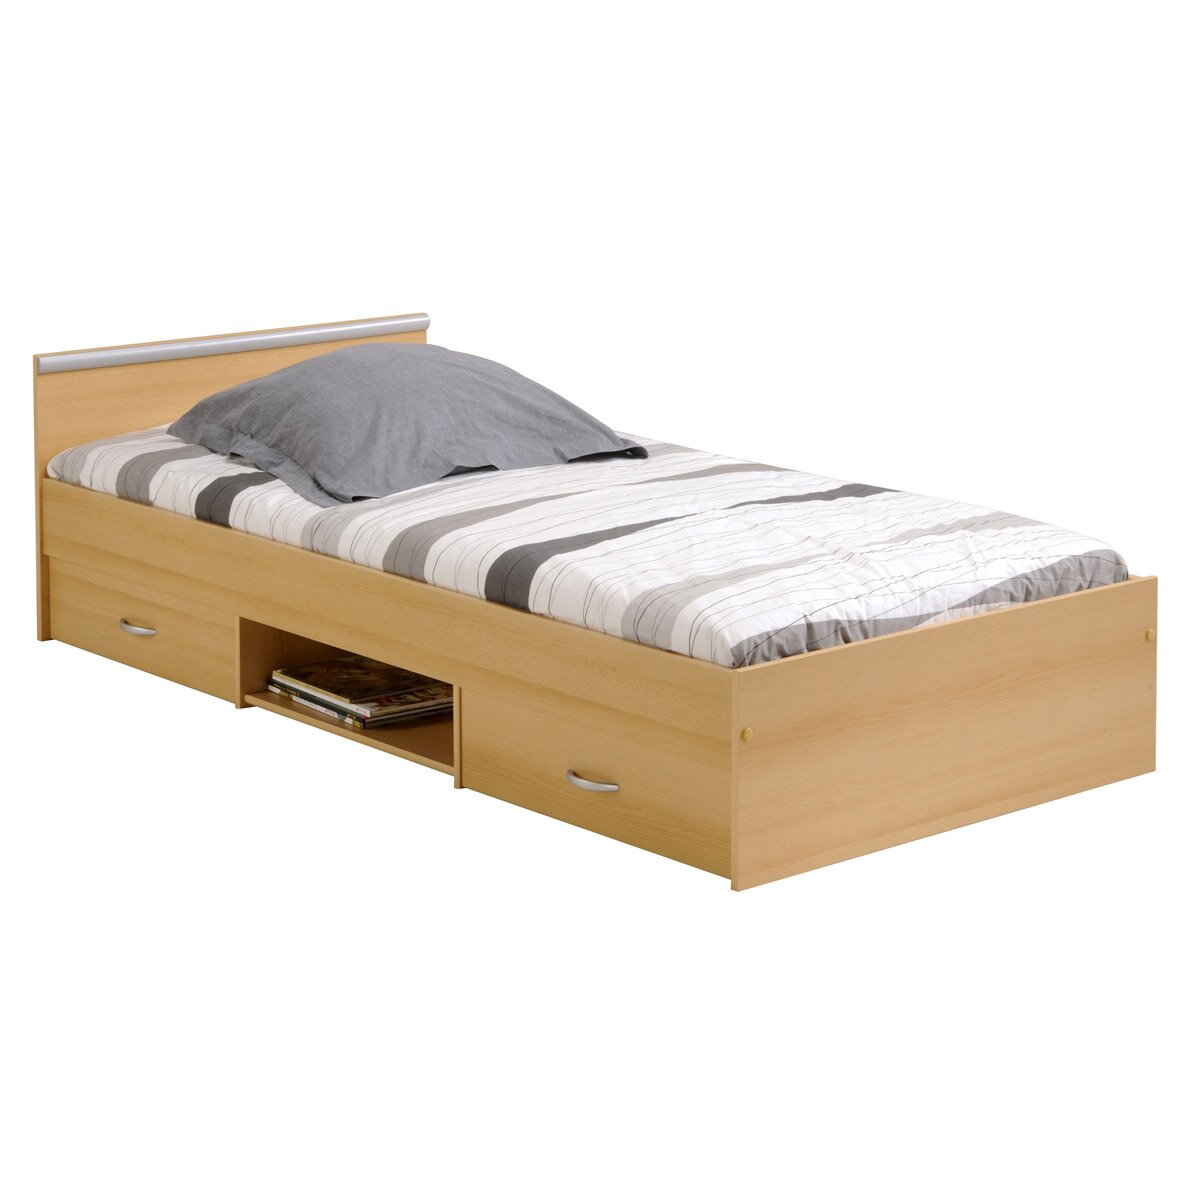 Parisot Storage Bed For Sale